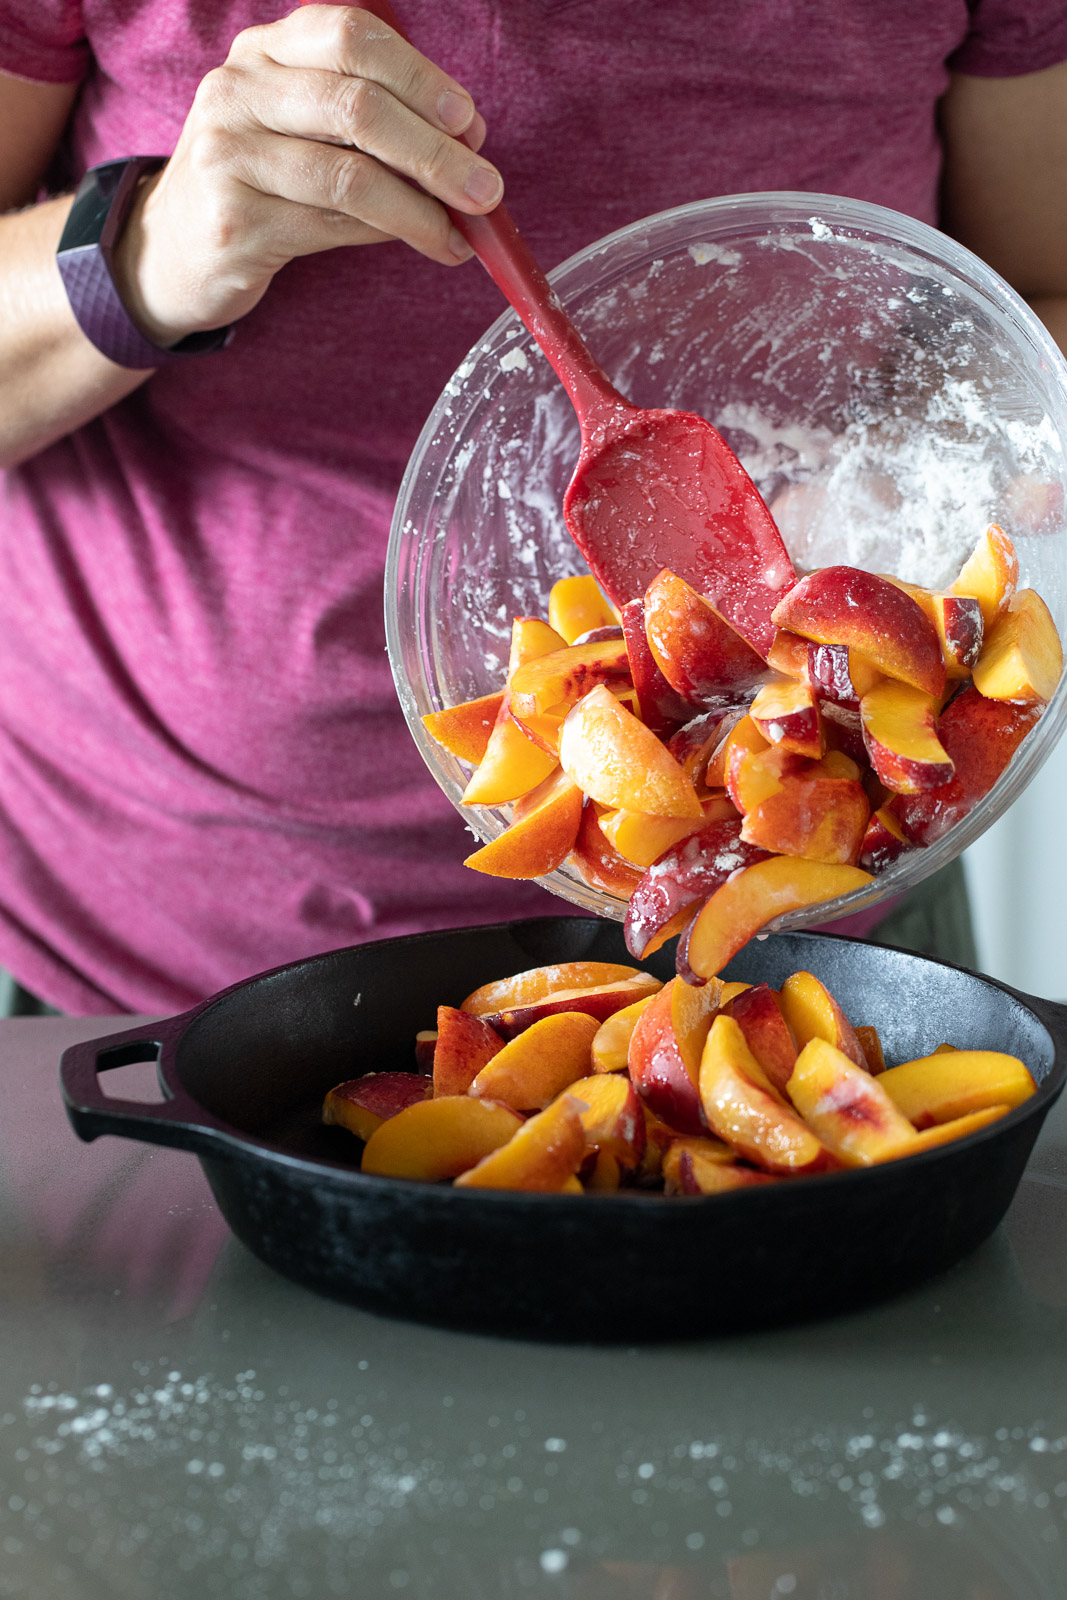 woman pouring nectarines into a cast iron skillet.